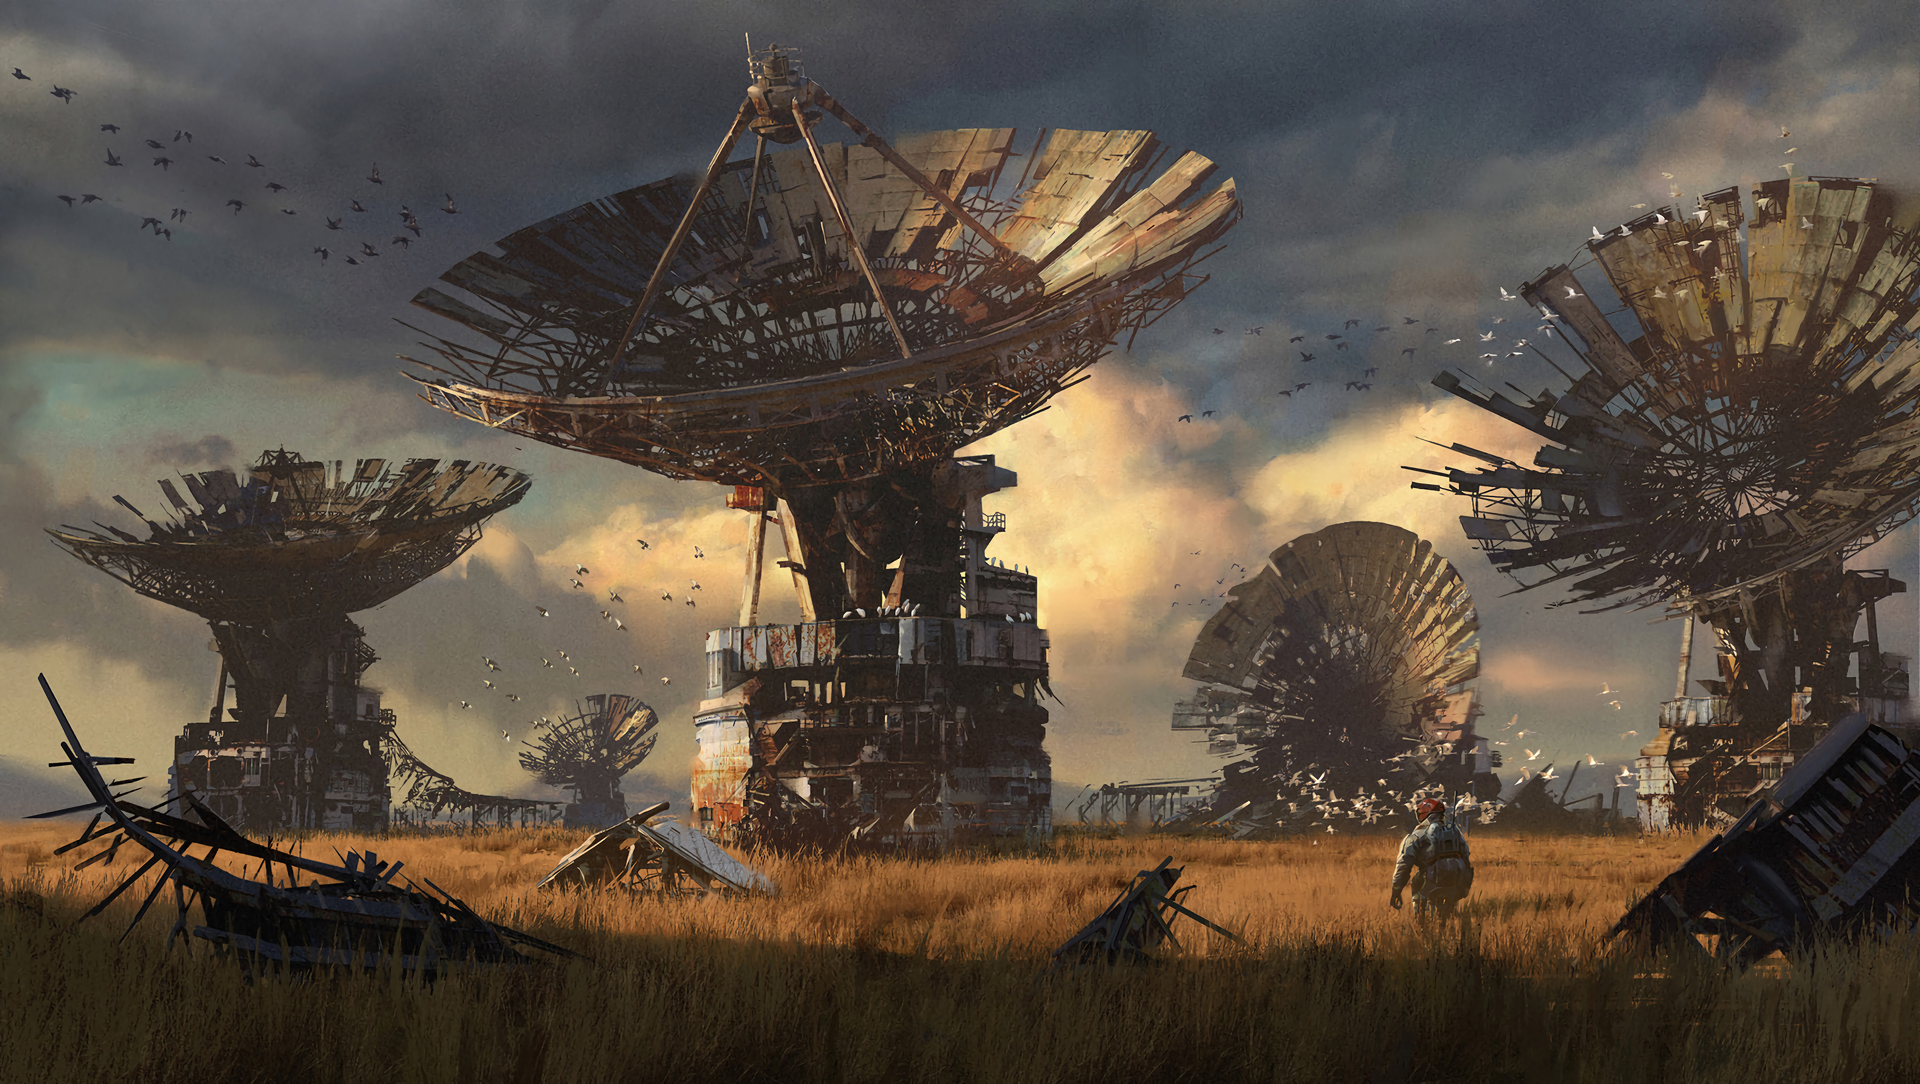 post apocalyptic hd wallpaper background image